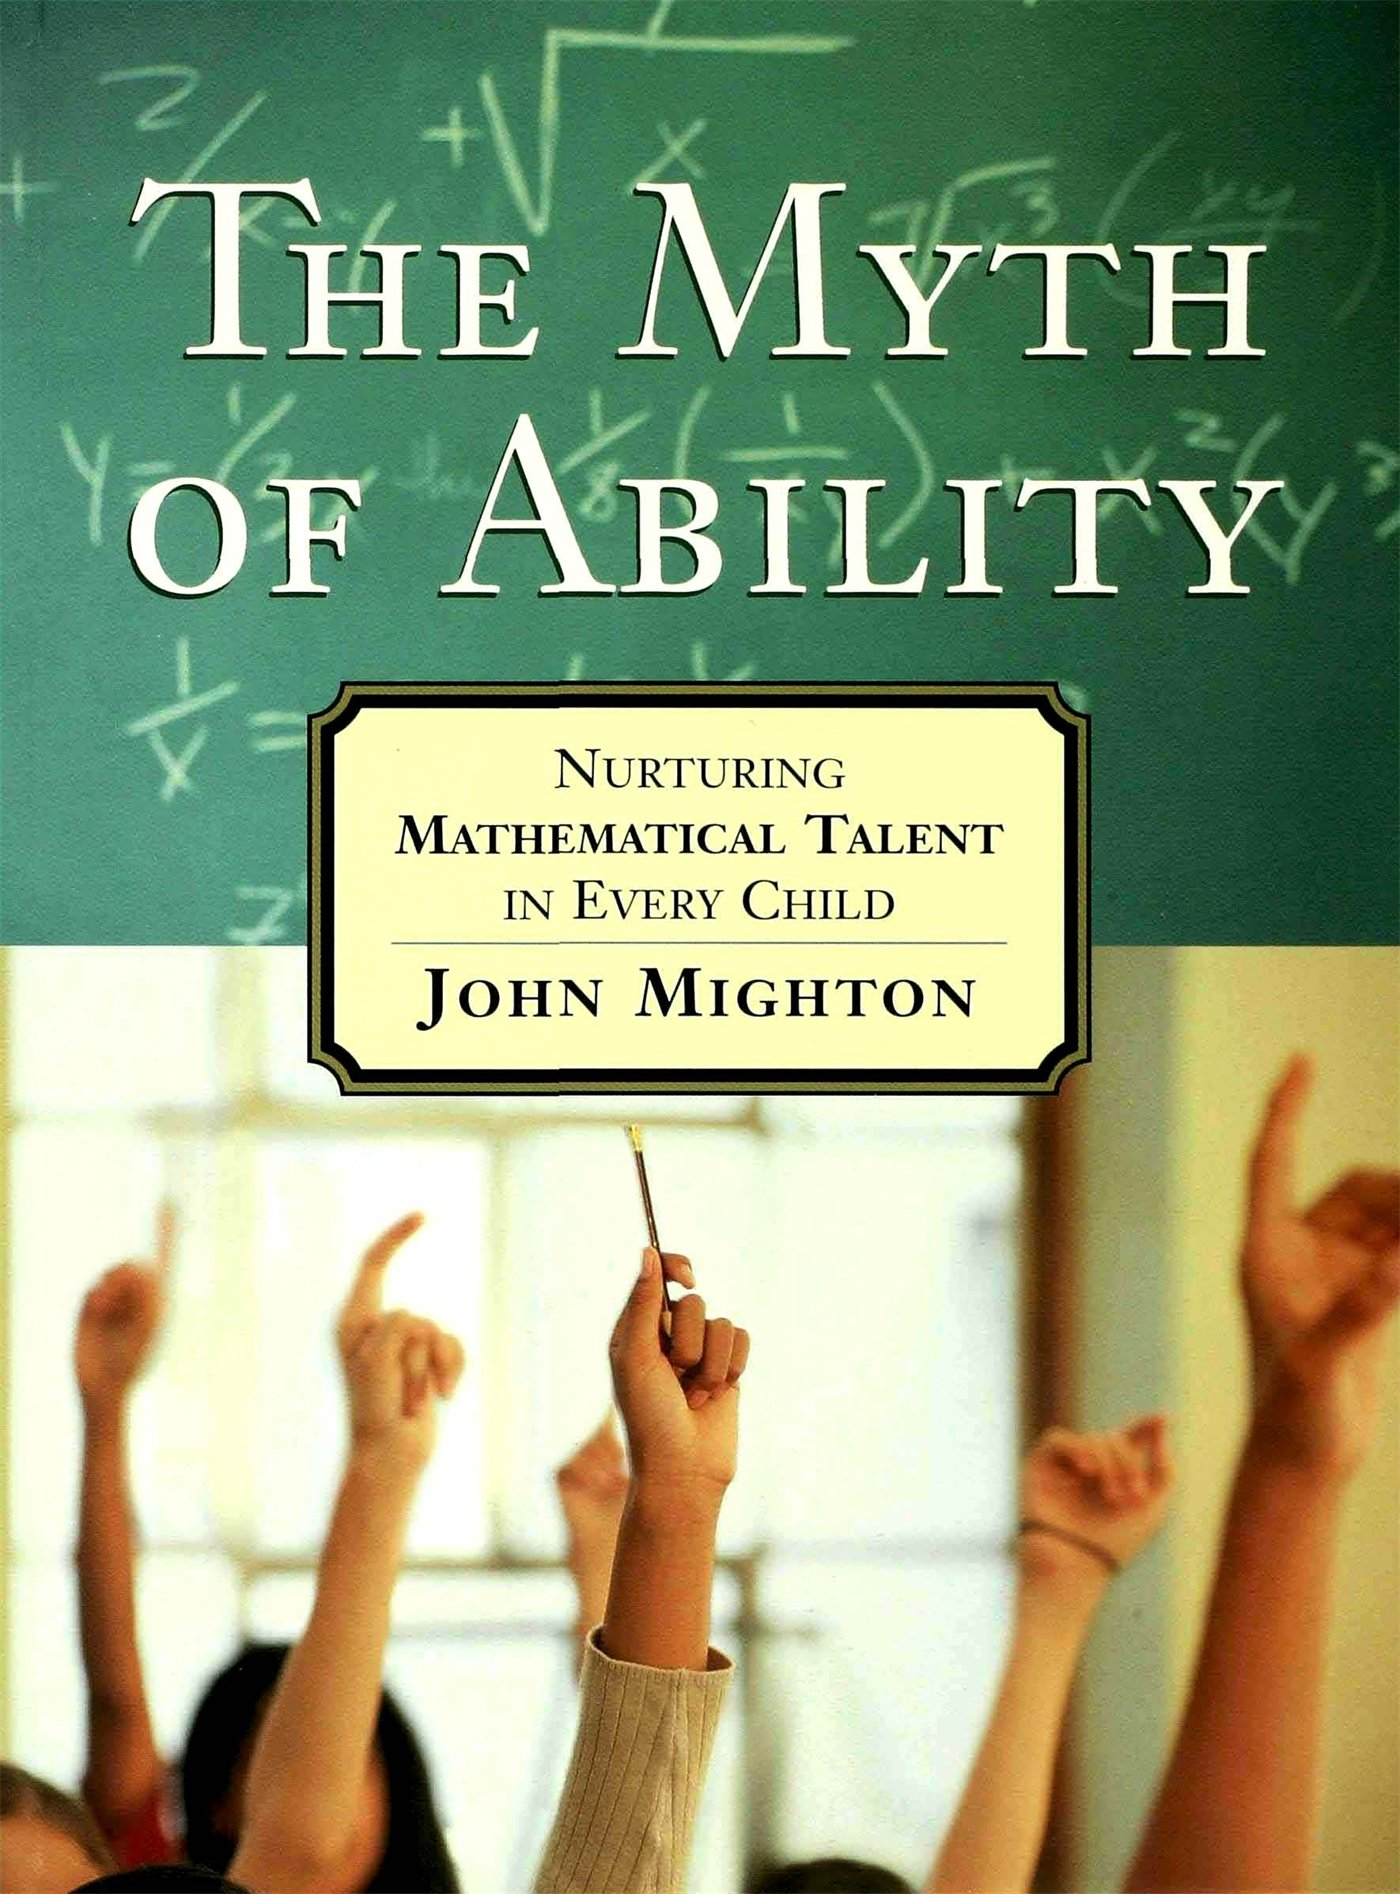 Amazon.com: The Myth of Ability: Nurturing Mathematical Talent in Every  Child (9780802777072): John Mighton: Books